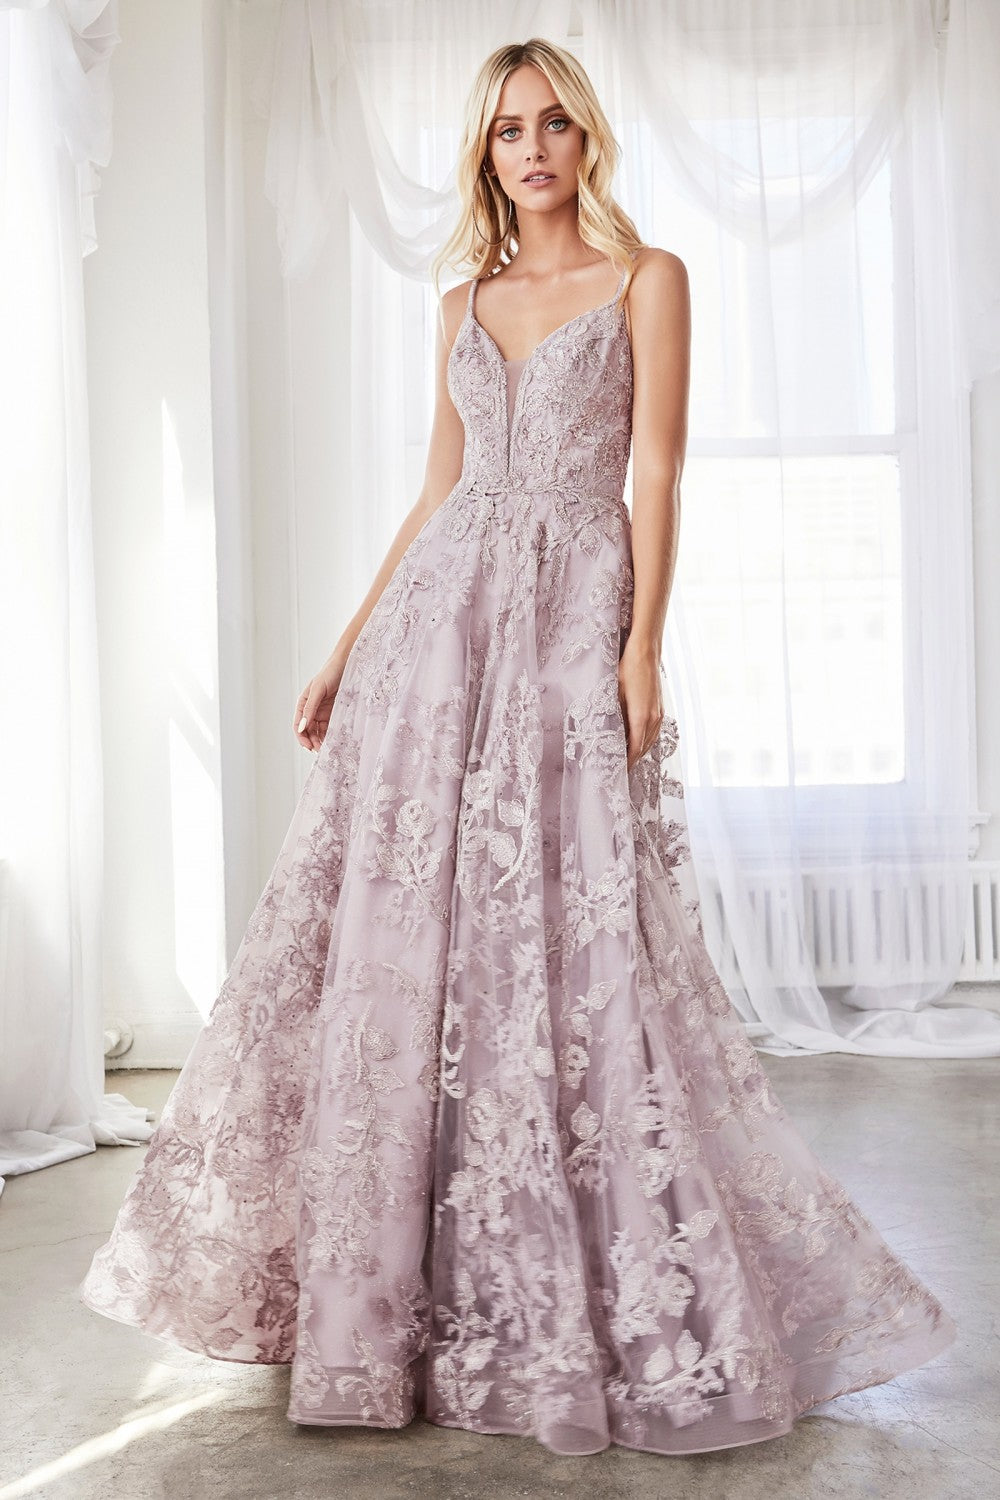 CD CD902 - A-Line Ball Gown with Plunging V-Neck Spaghetti Straps & Layered Lace Applique Skirt - Diggz Prom